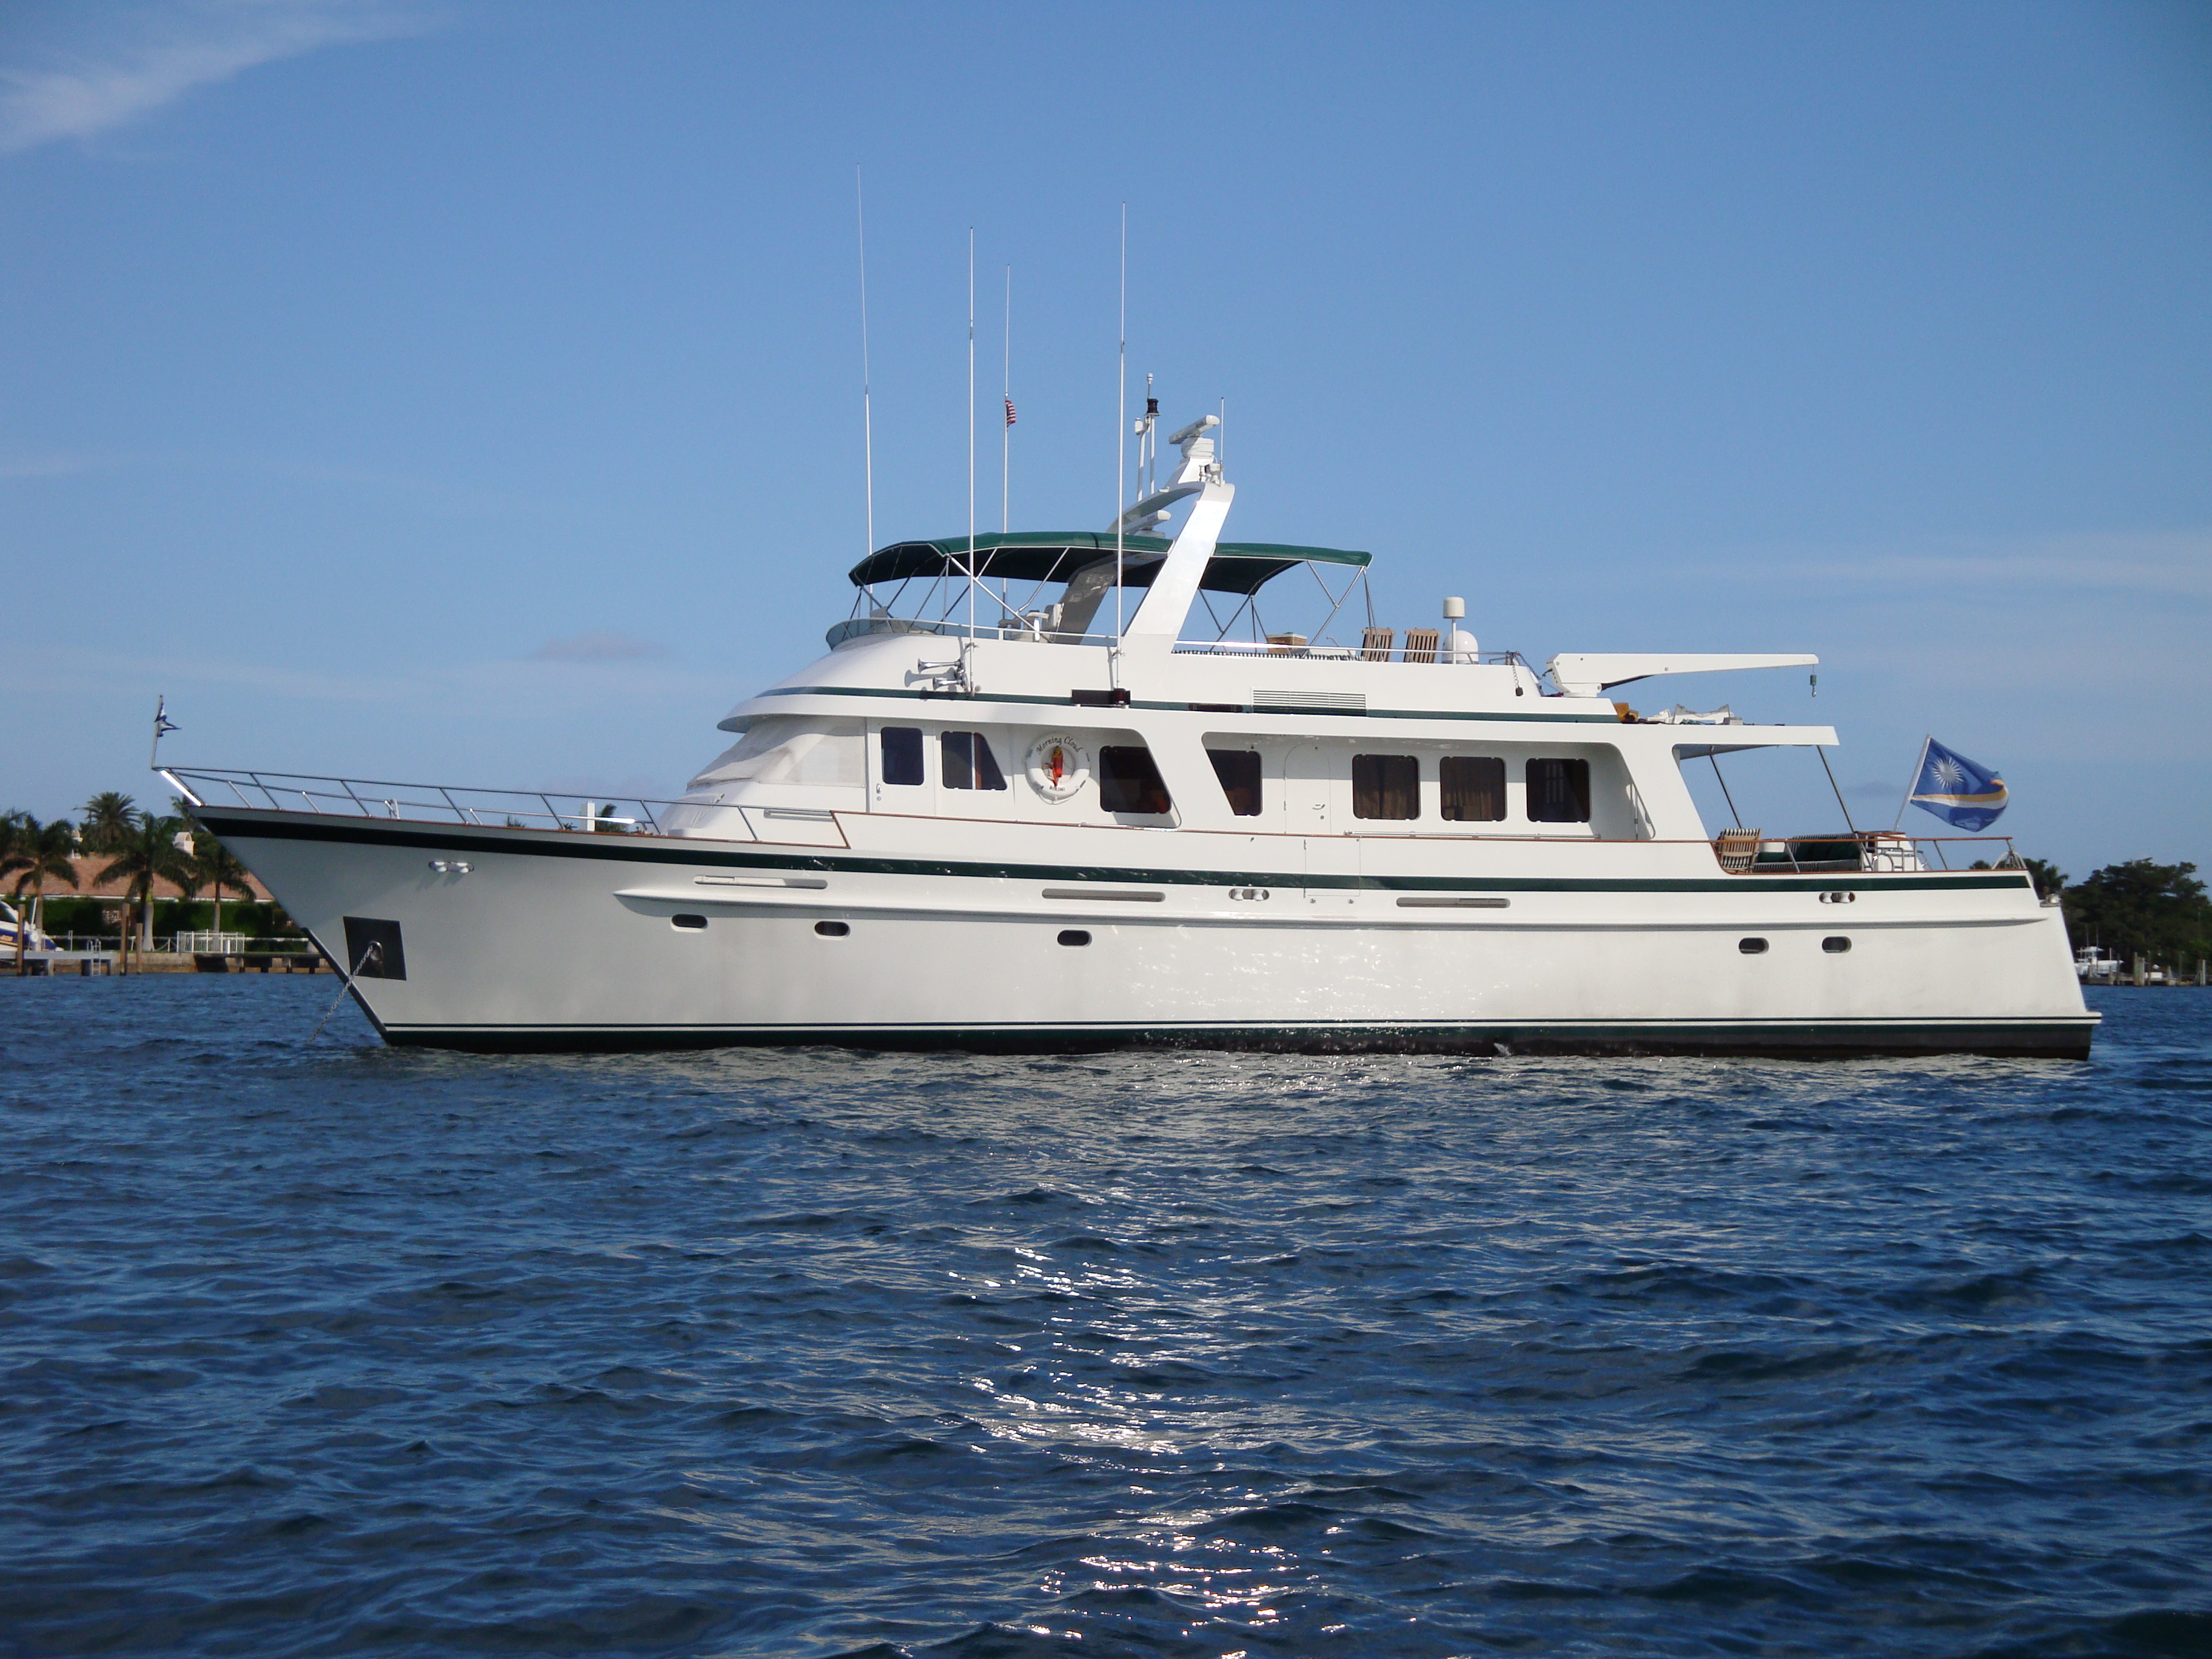 Best Home Surveillance System >> The Best Surveillance Systems for Yachts and Boats